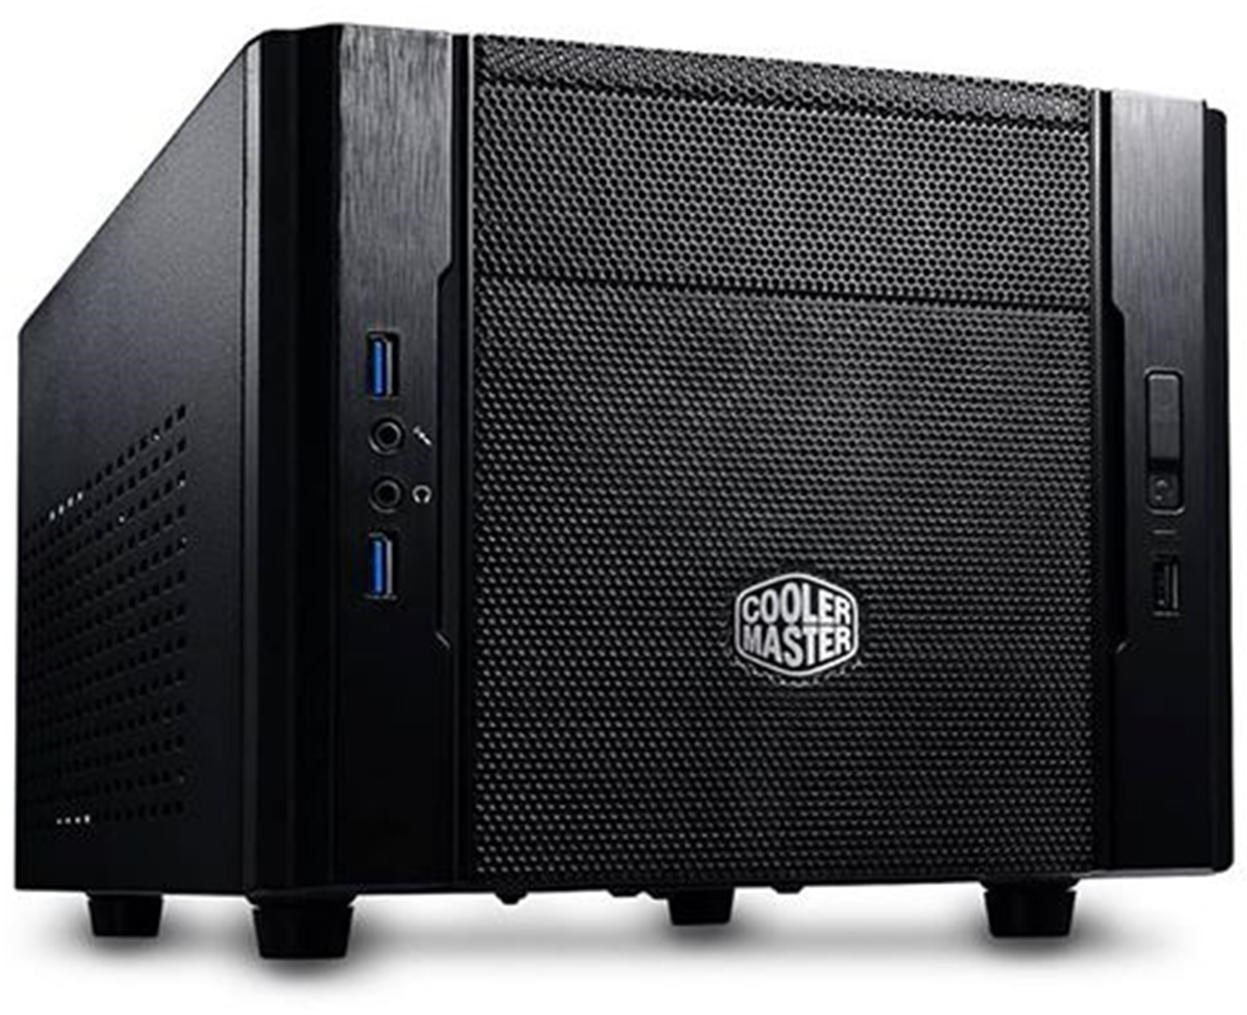 Cooler Master Elite 130 Black mITX Case - NO PSU